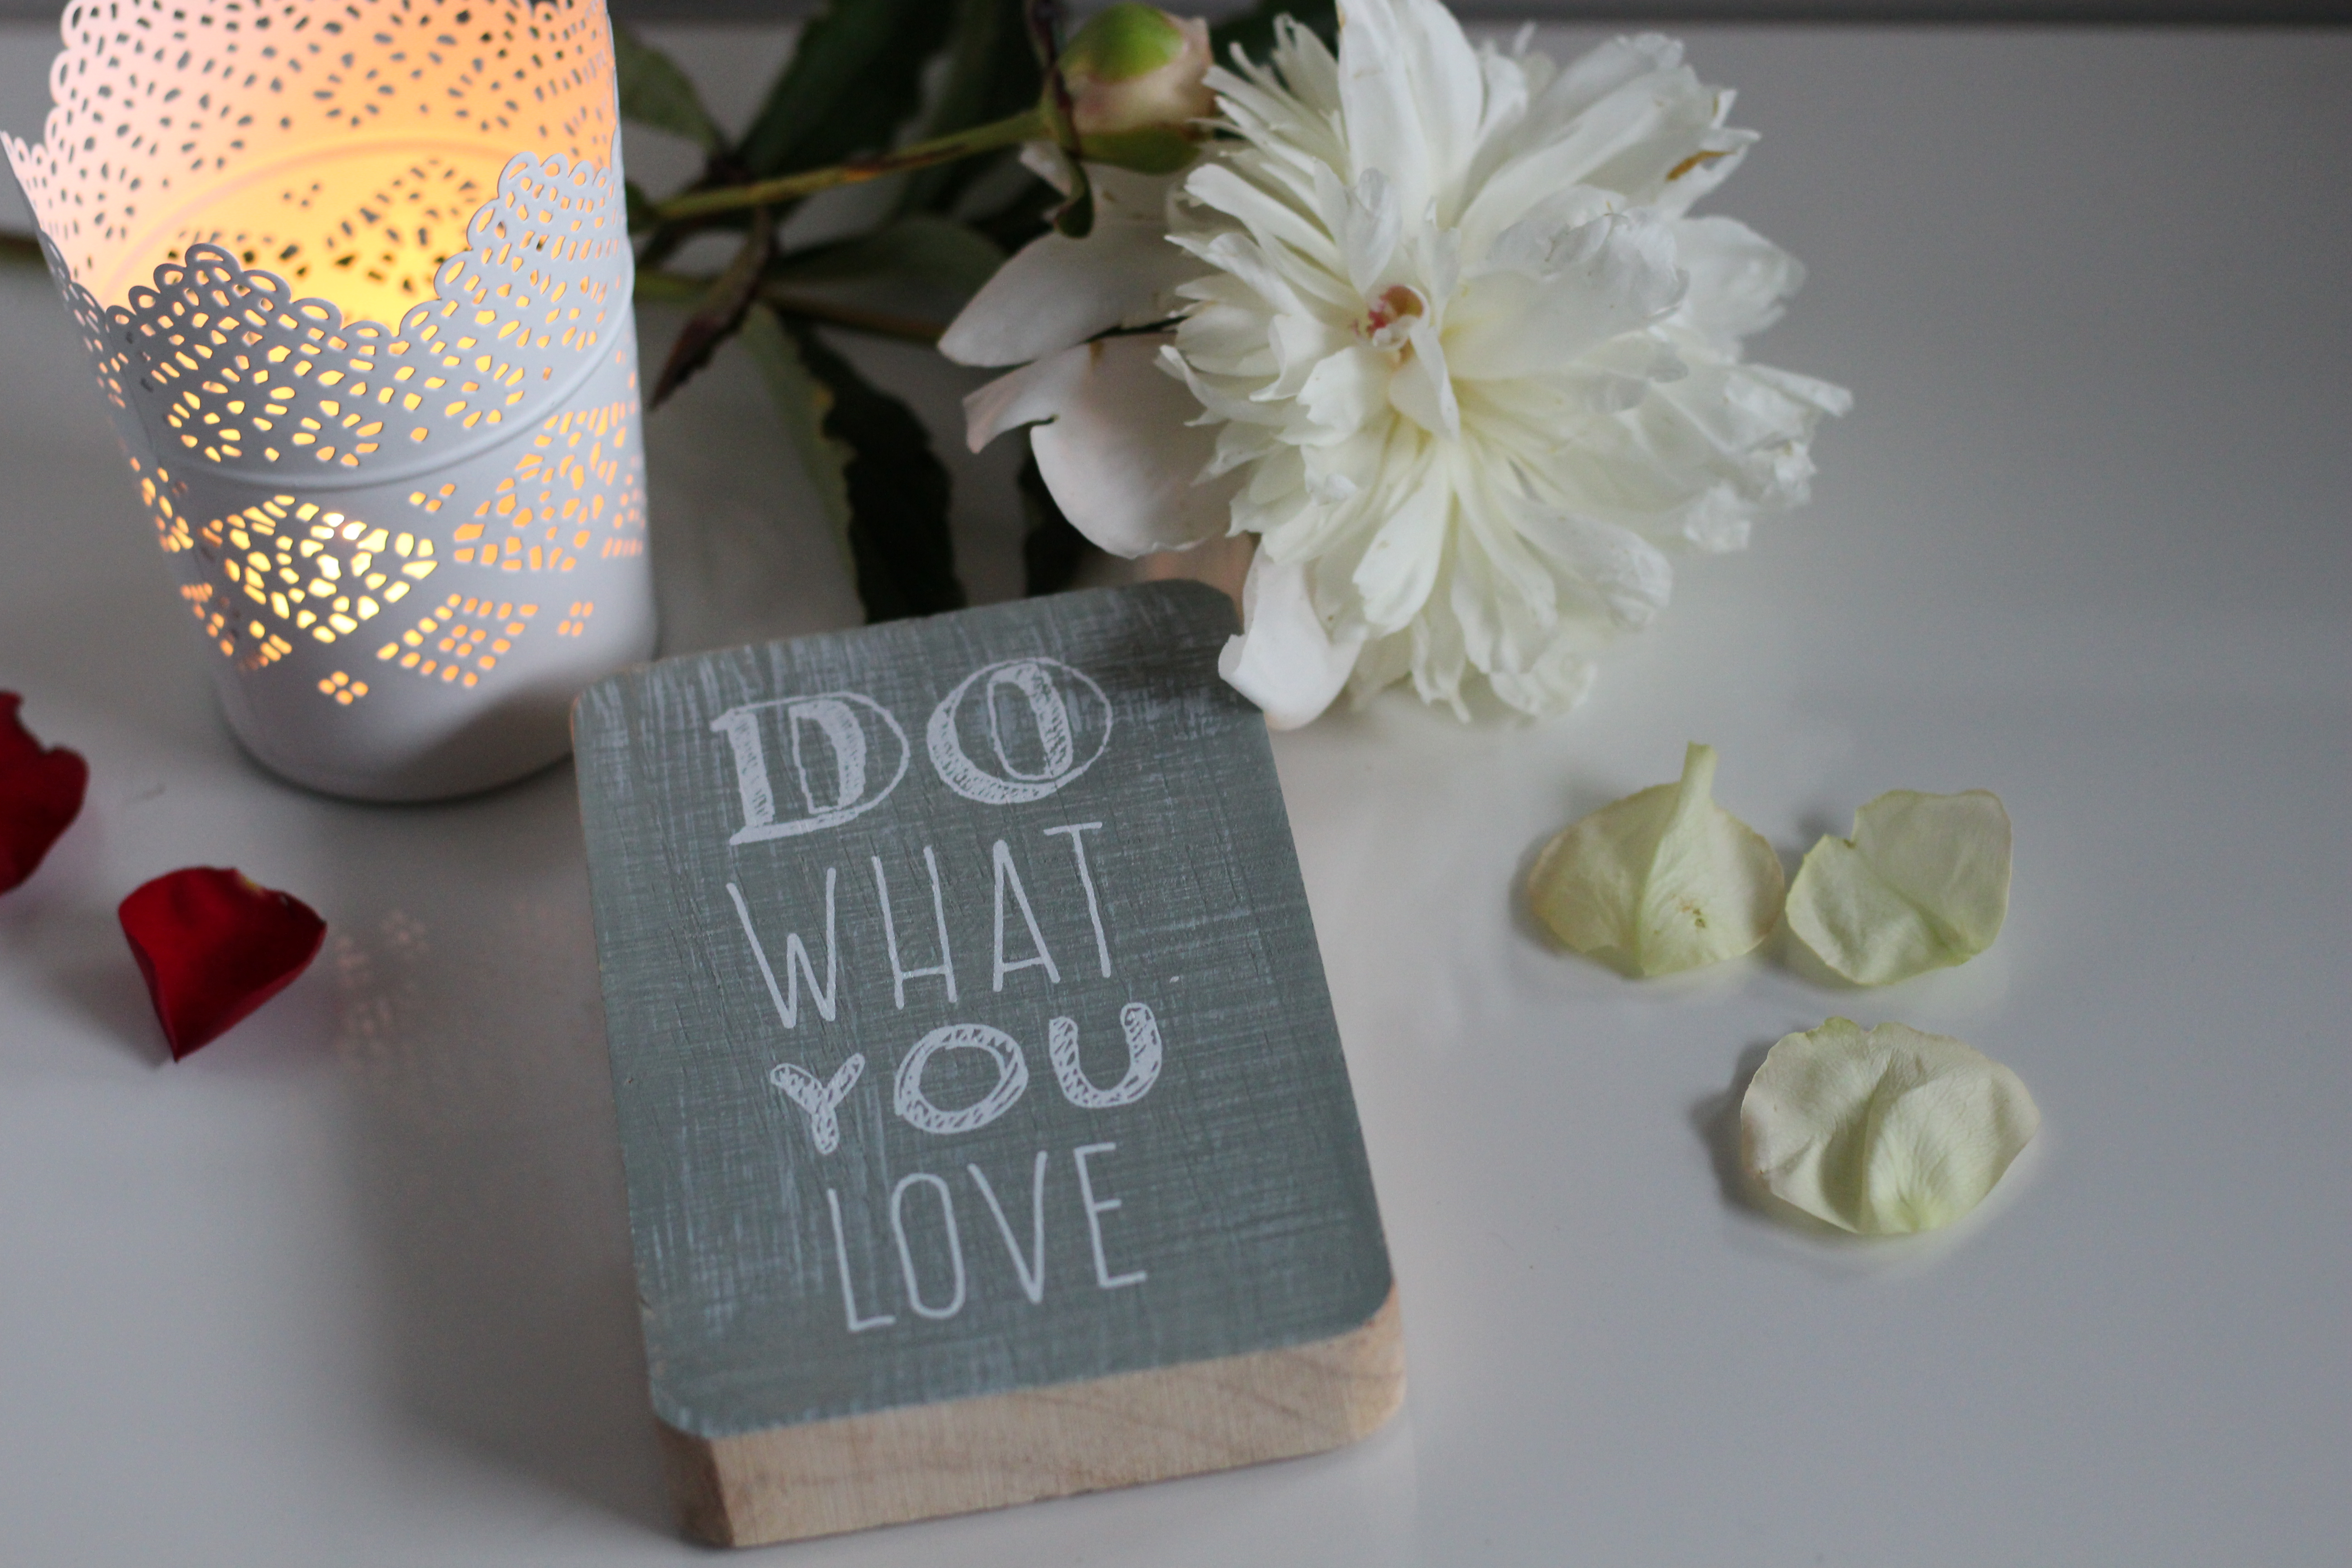 Liebster Blog Award Dein Homespa Do what you love